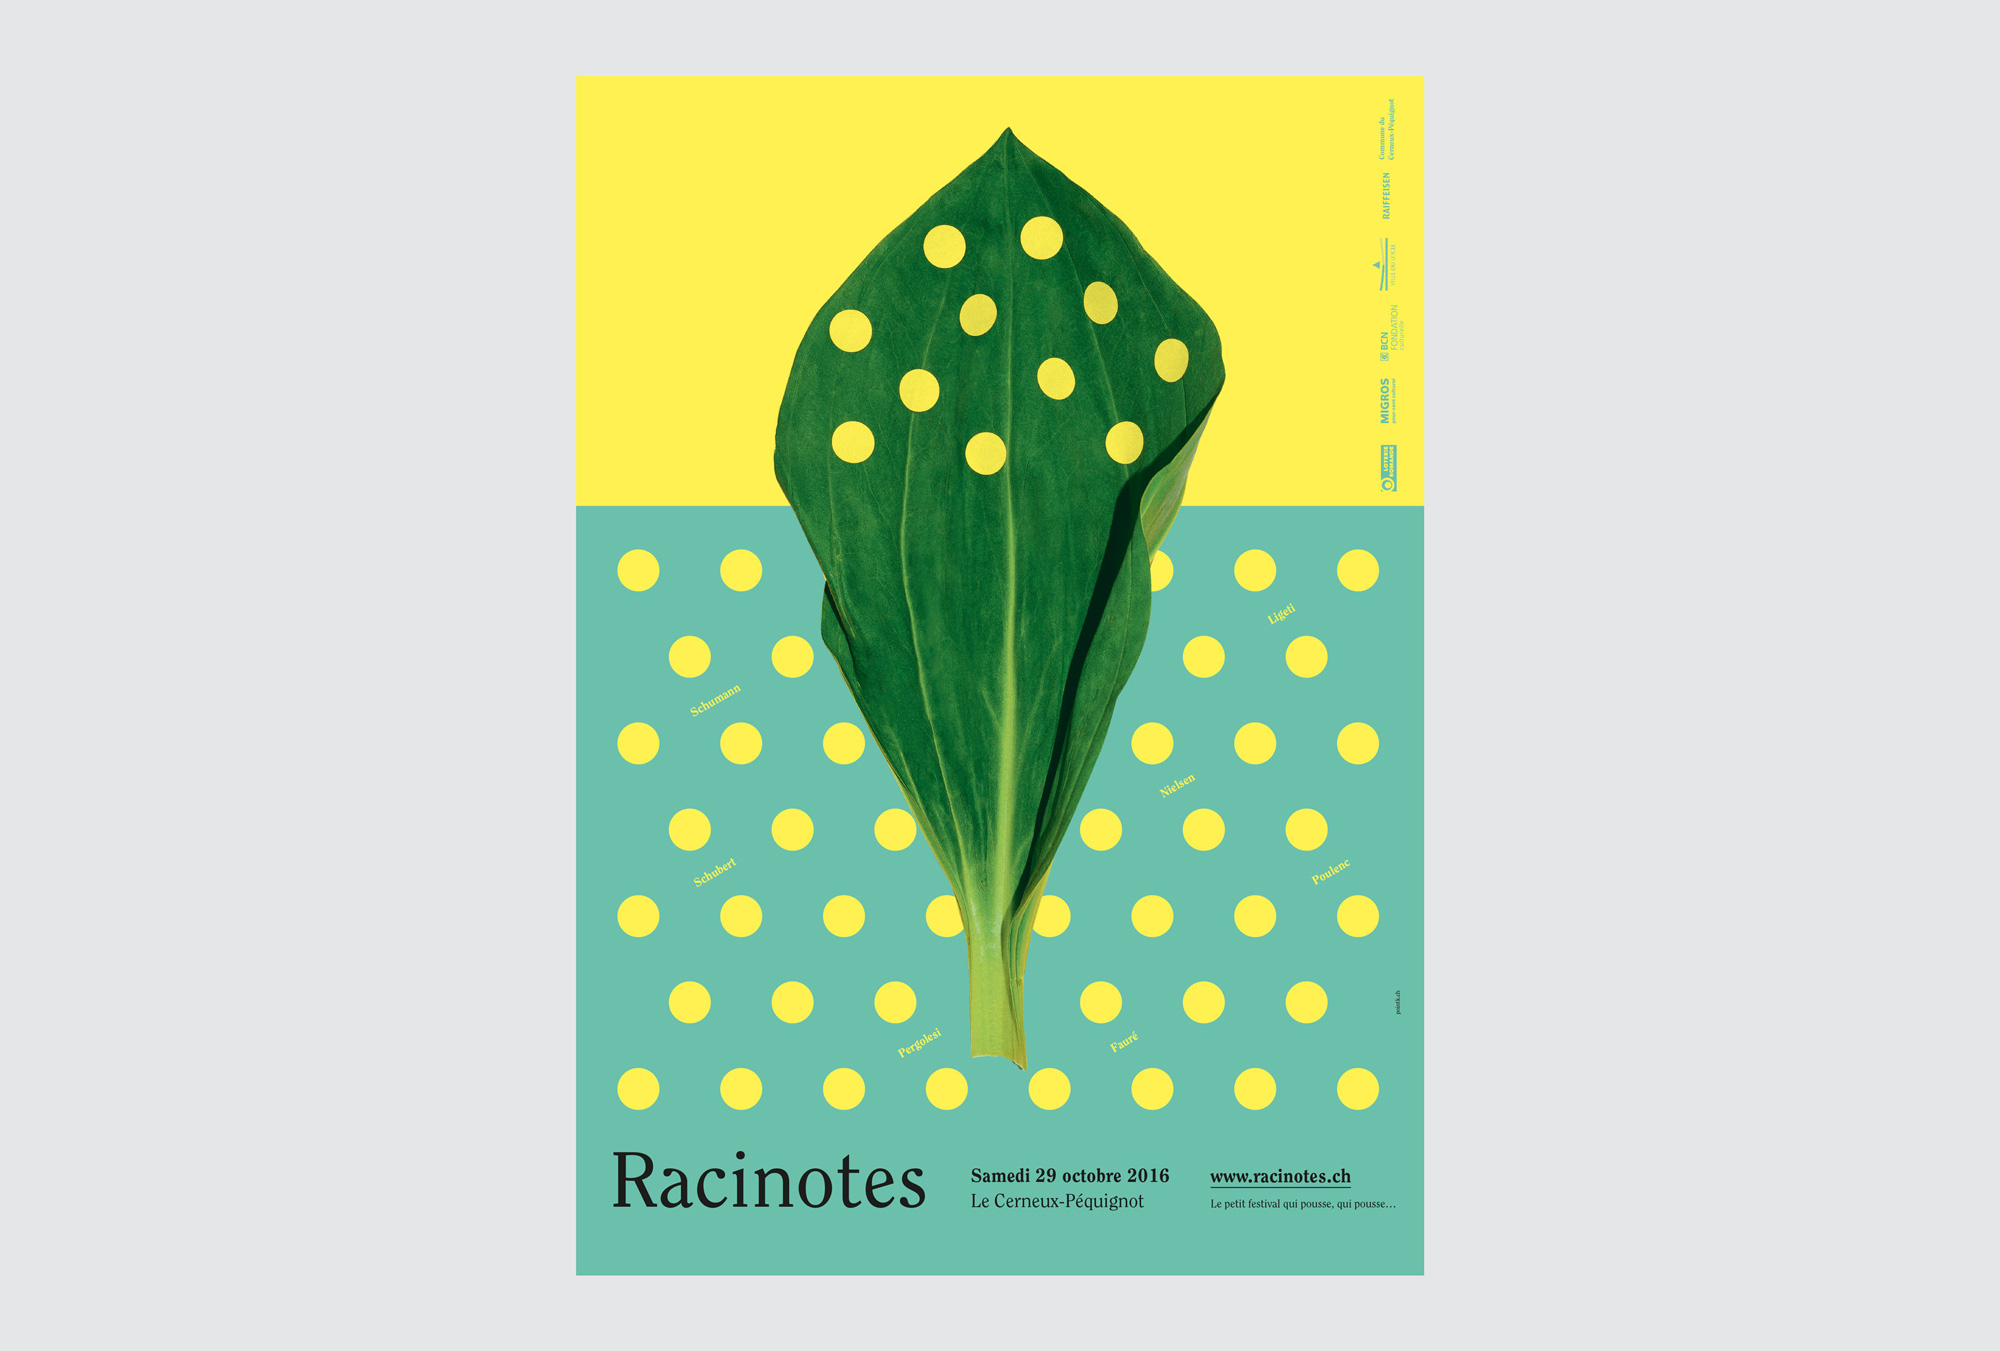 affiche_racinotes_2016